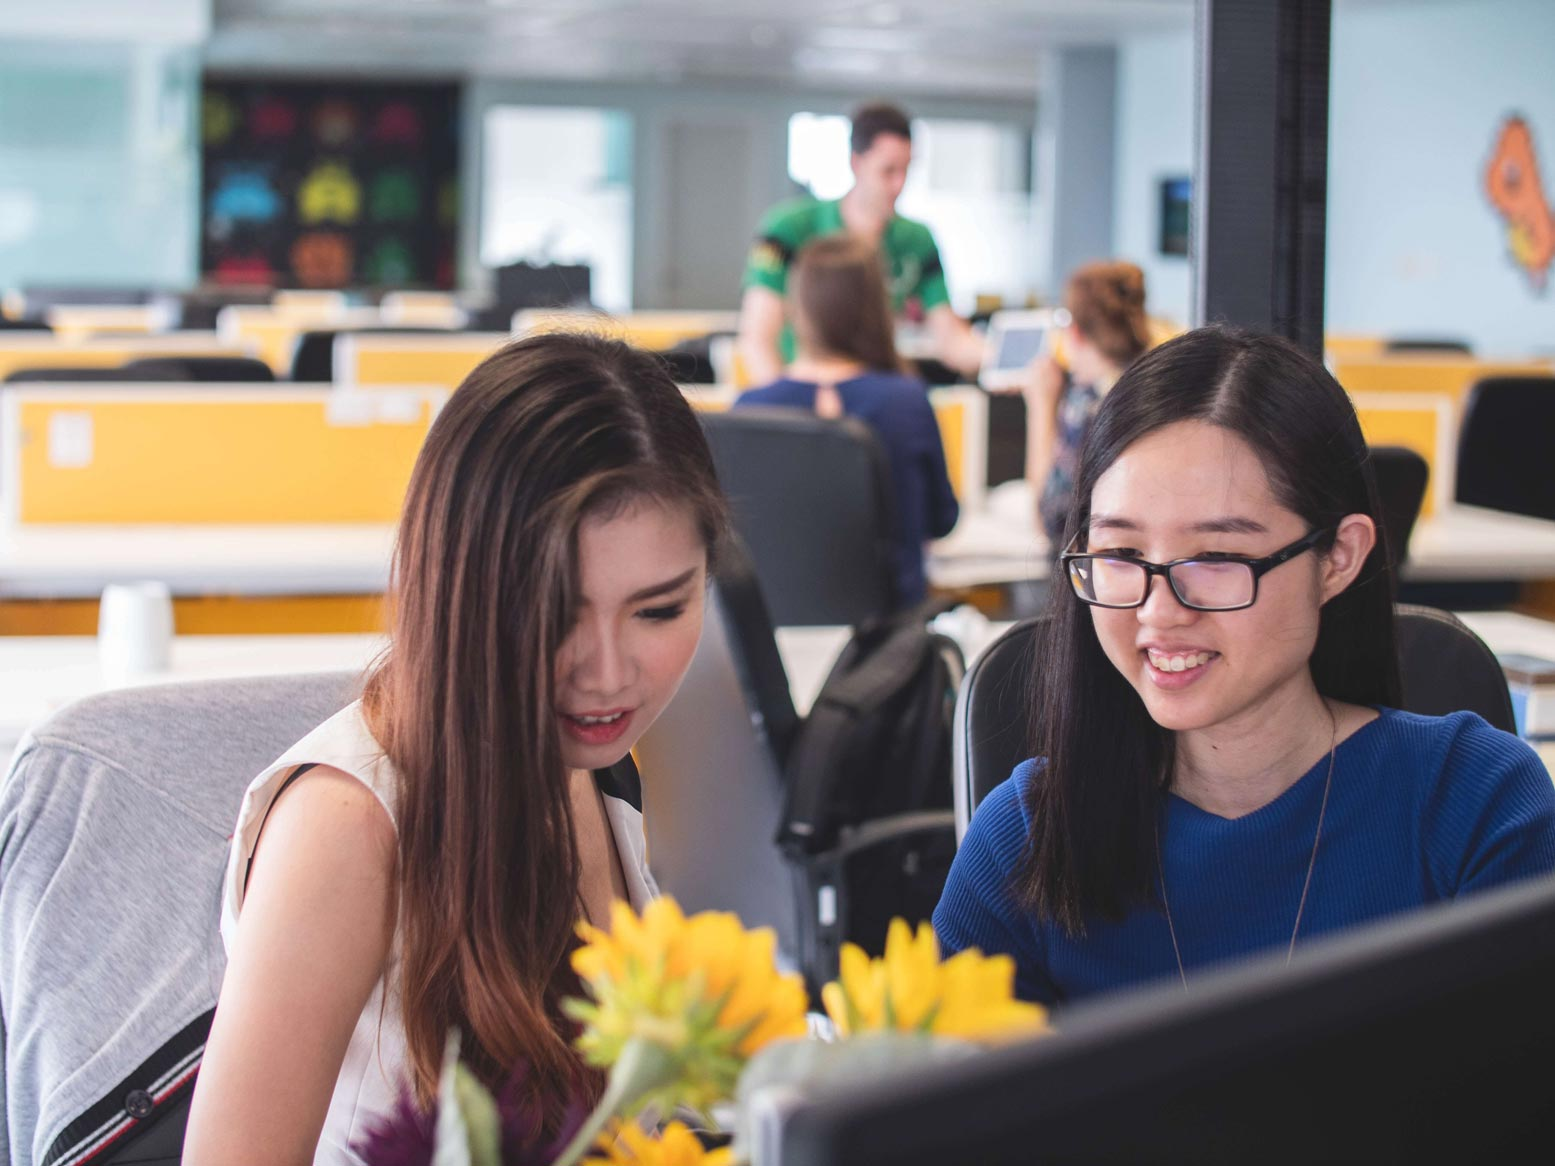 How to Succeed as a Woman in Tech